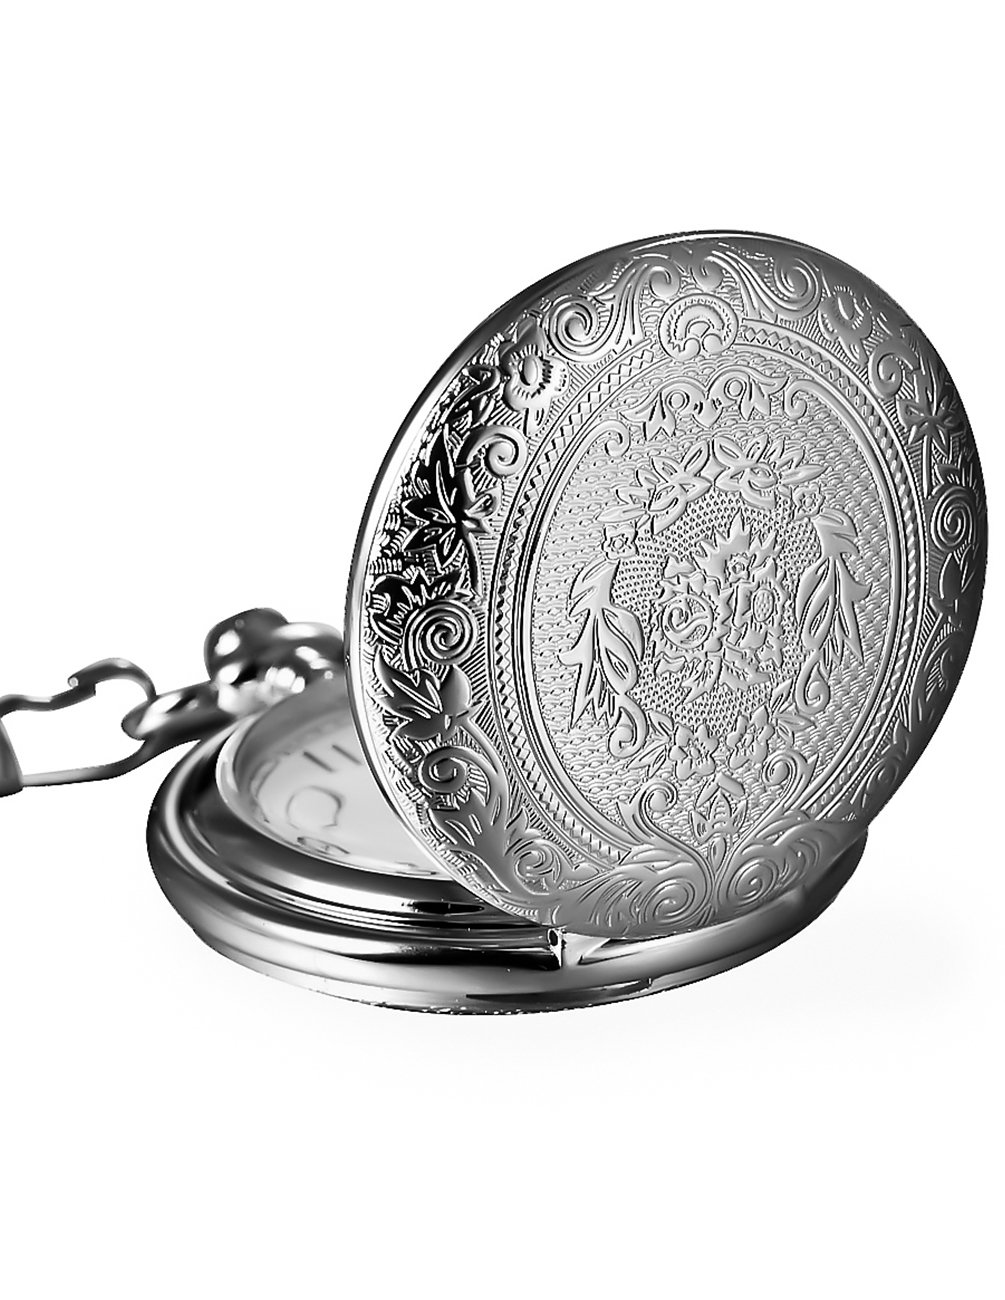 Mudder Vintage Silver Stainless Steel Quartz Pocket Watch Chain 0